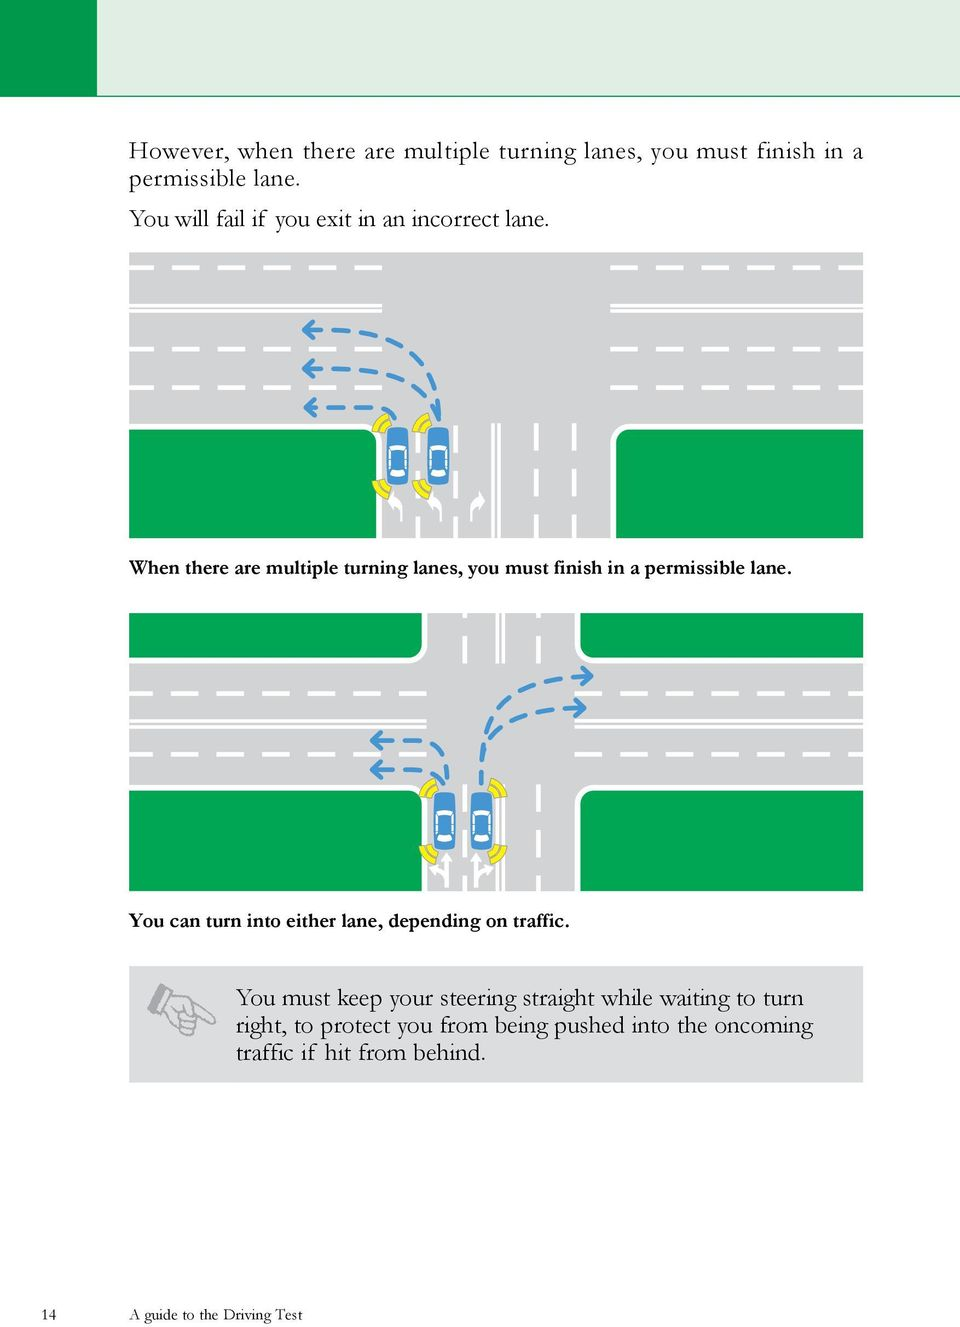 When there are multiple turning lanes, you must finish in a permissible lane.